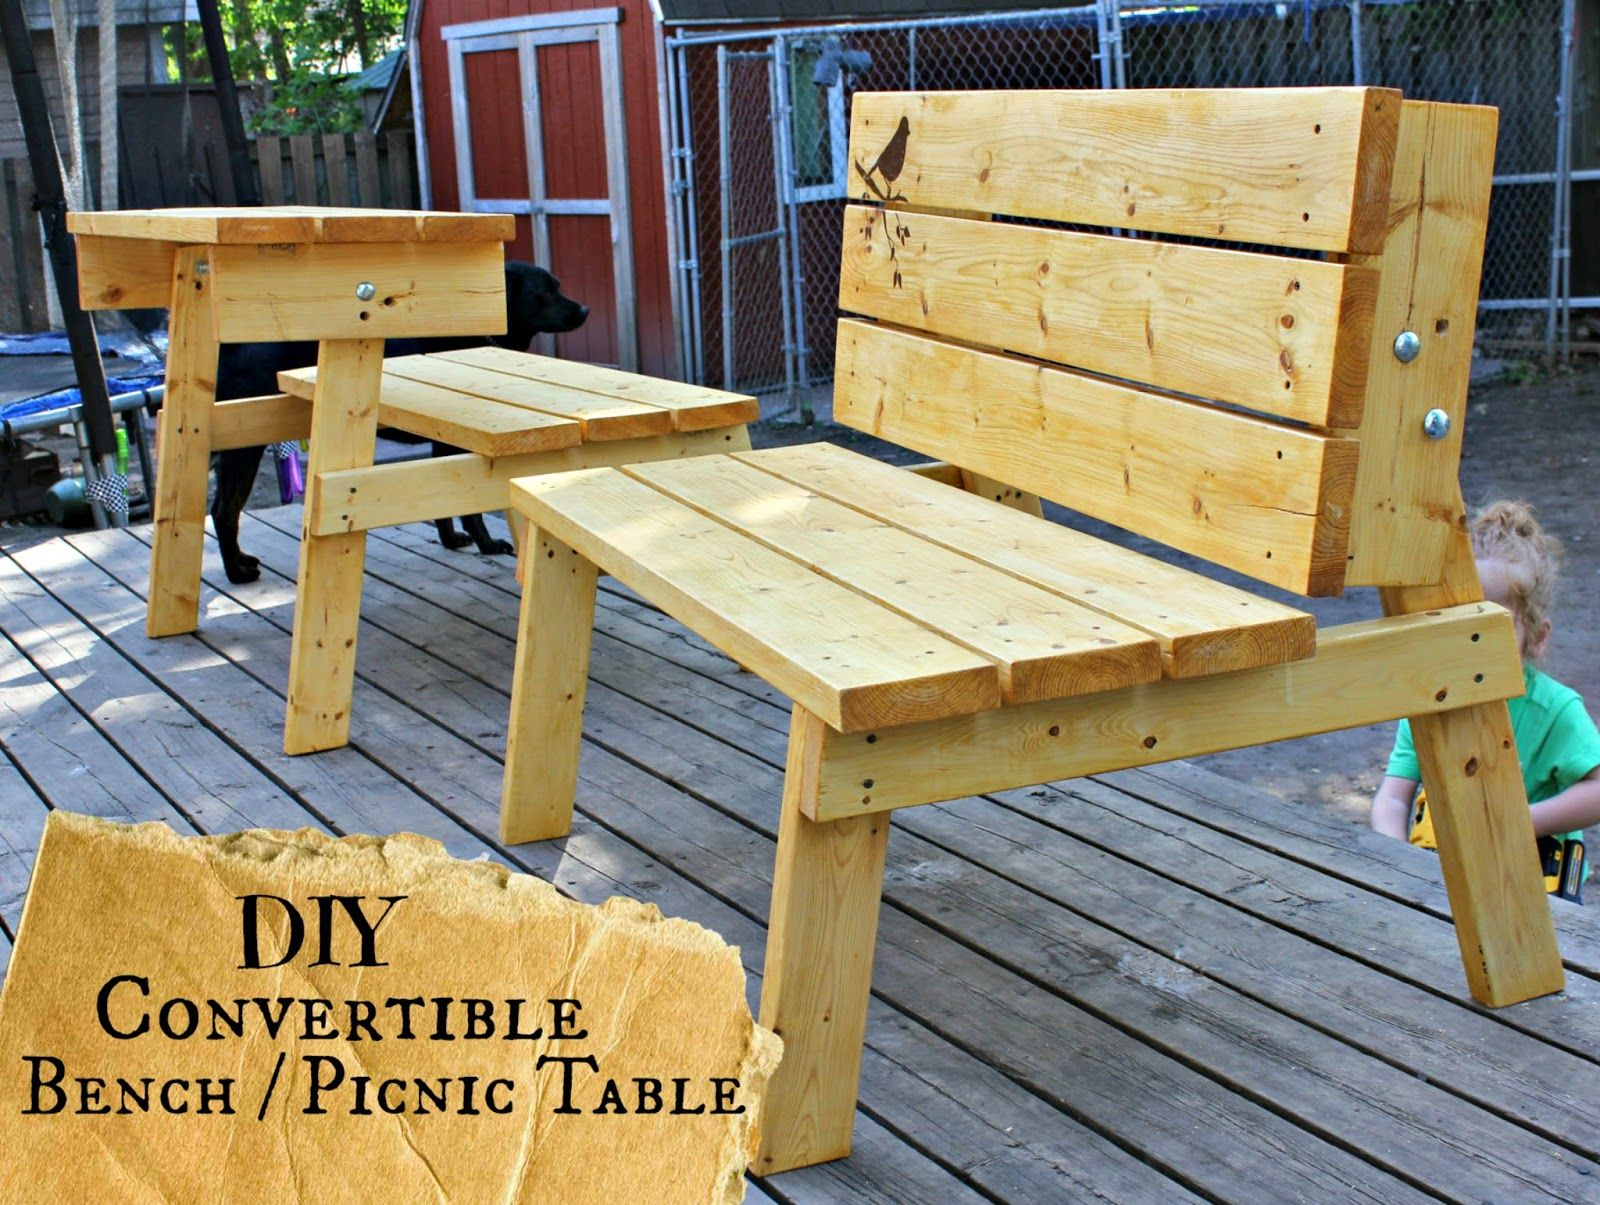 The Good Kind of Crazy: Convertible Bench/Picnic Table you can make TOMORROW!